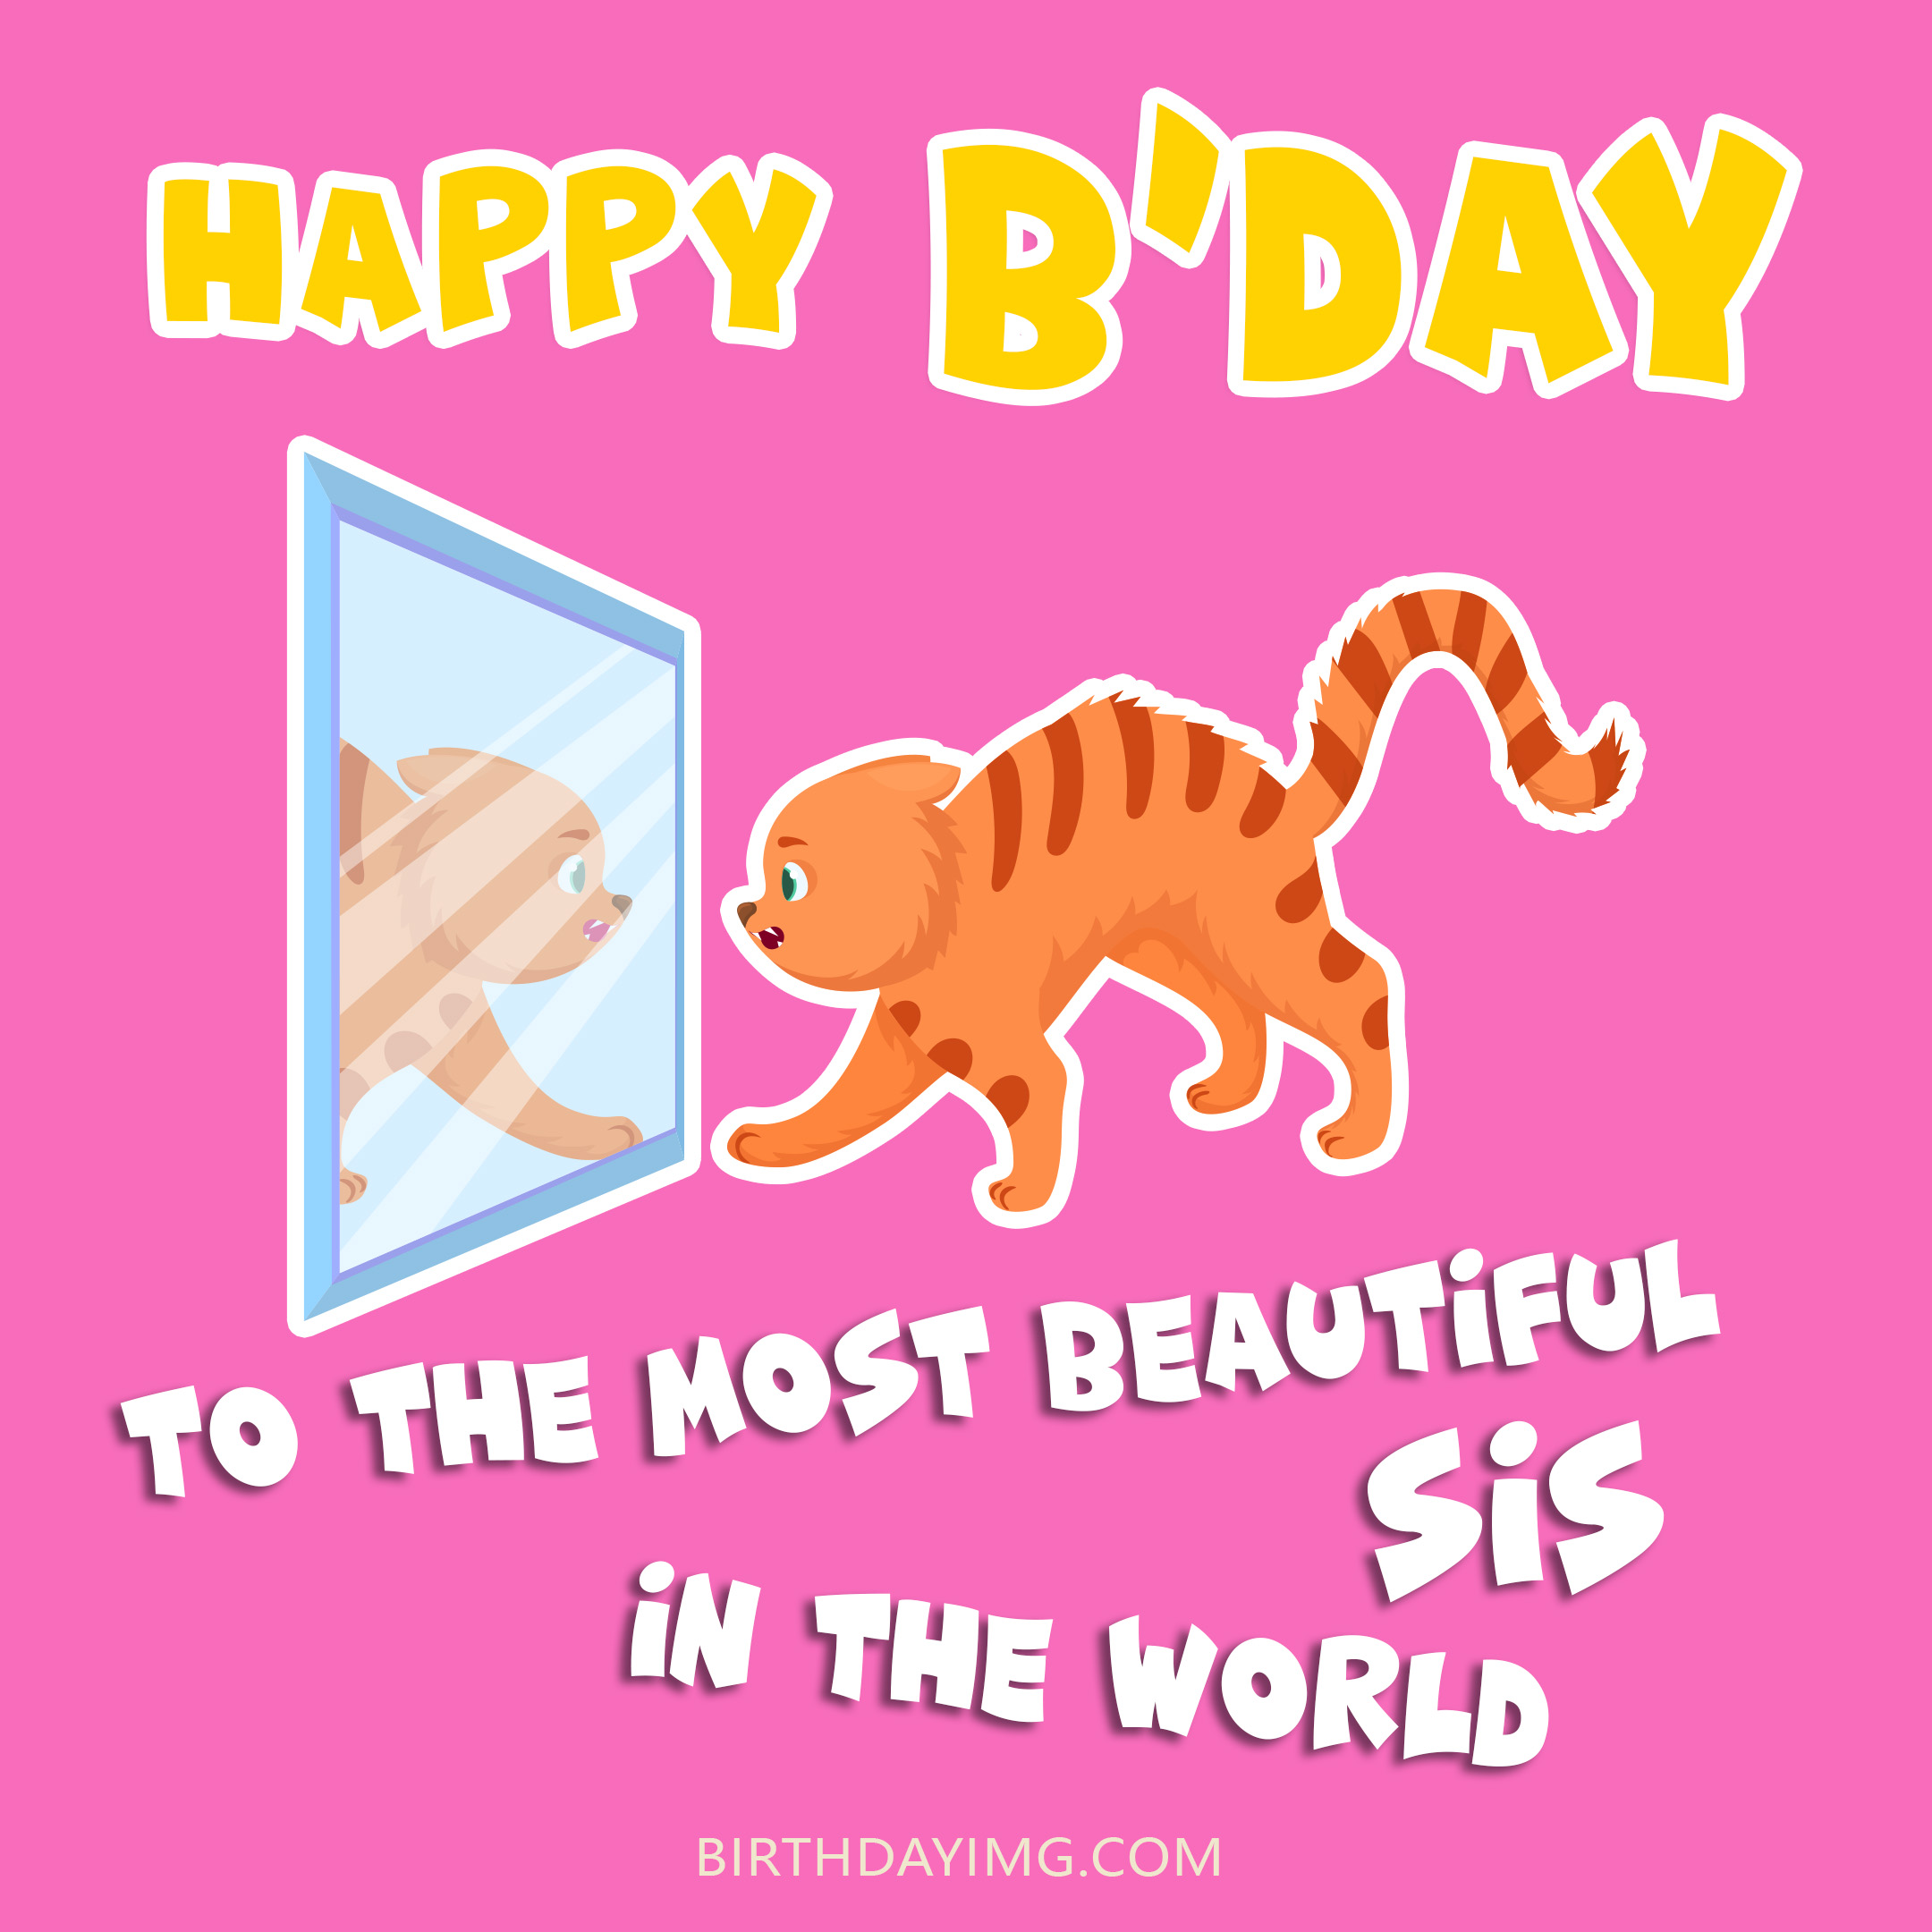 Free Happy Birthday Image For Sister With Funny Cat - birthdayimg.com